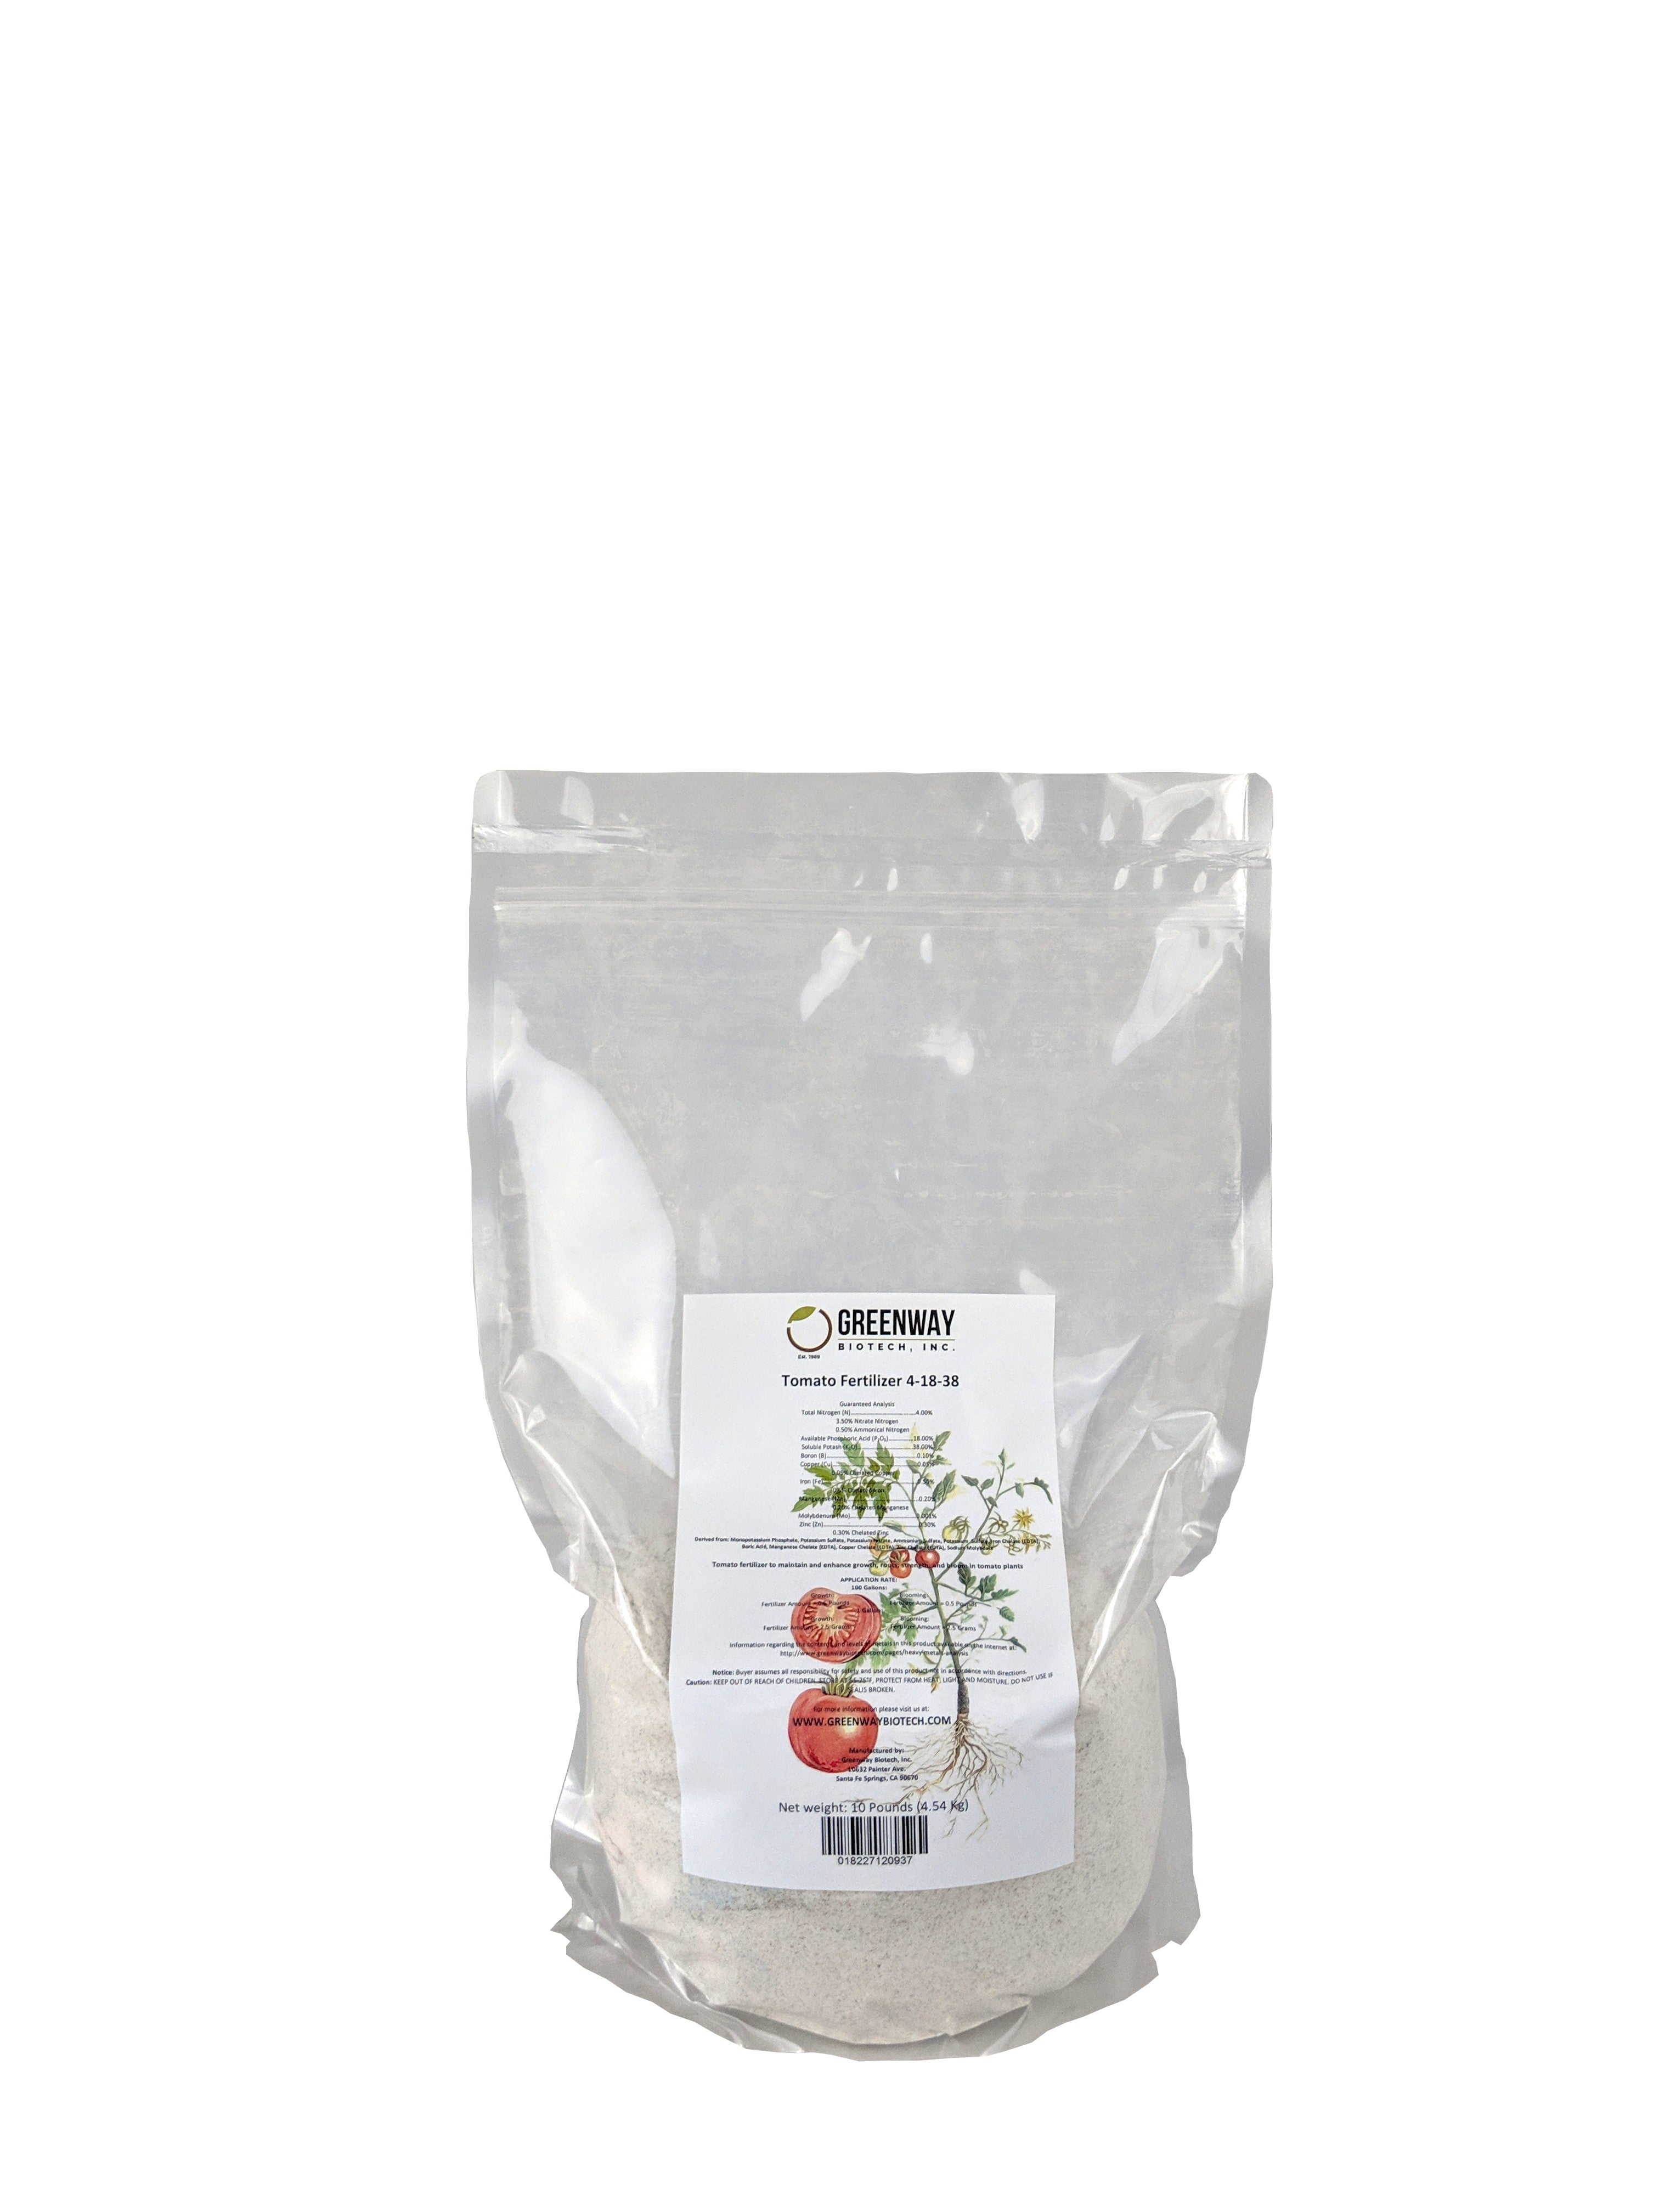 Tomato Fertilizer 4-18-38 Plus Micronutrients 100% Water Soluble 10 Pounds